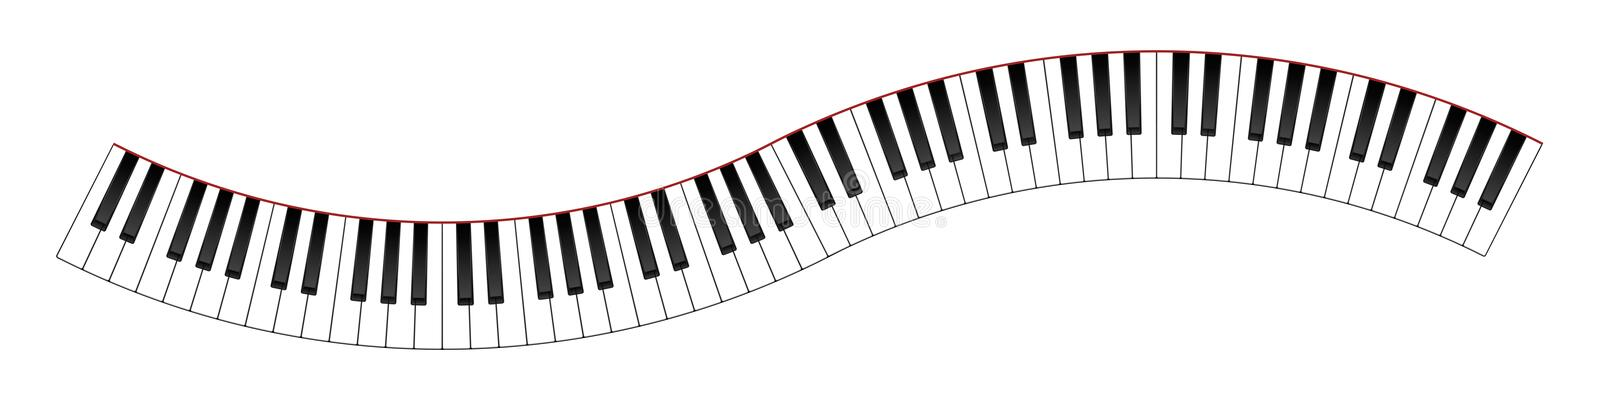 Curved Piano Keyboard. 8 Octaves Curved Piano Keyboard Illustration stock illustration